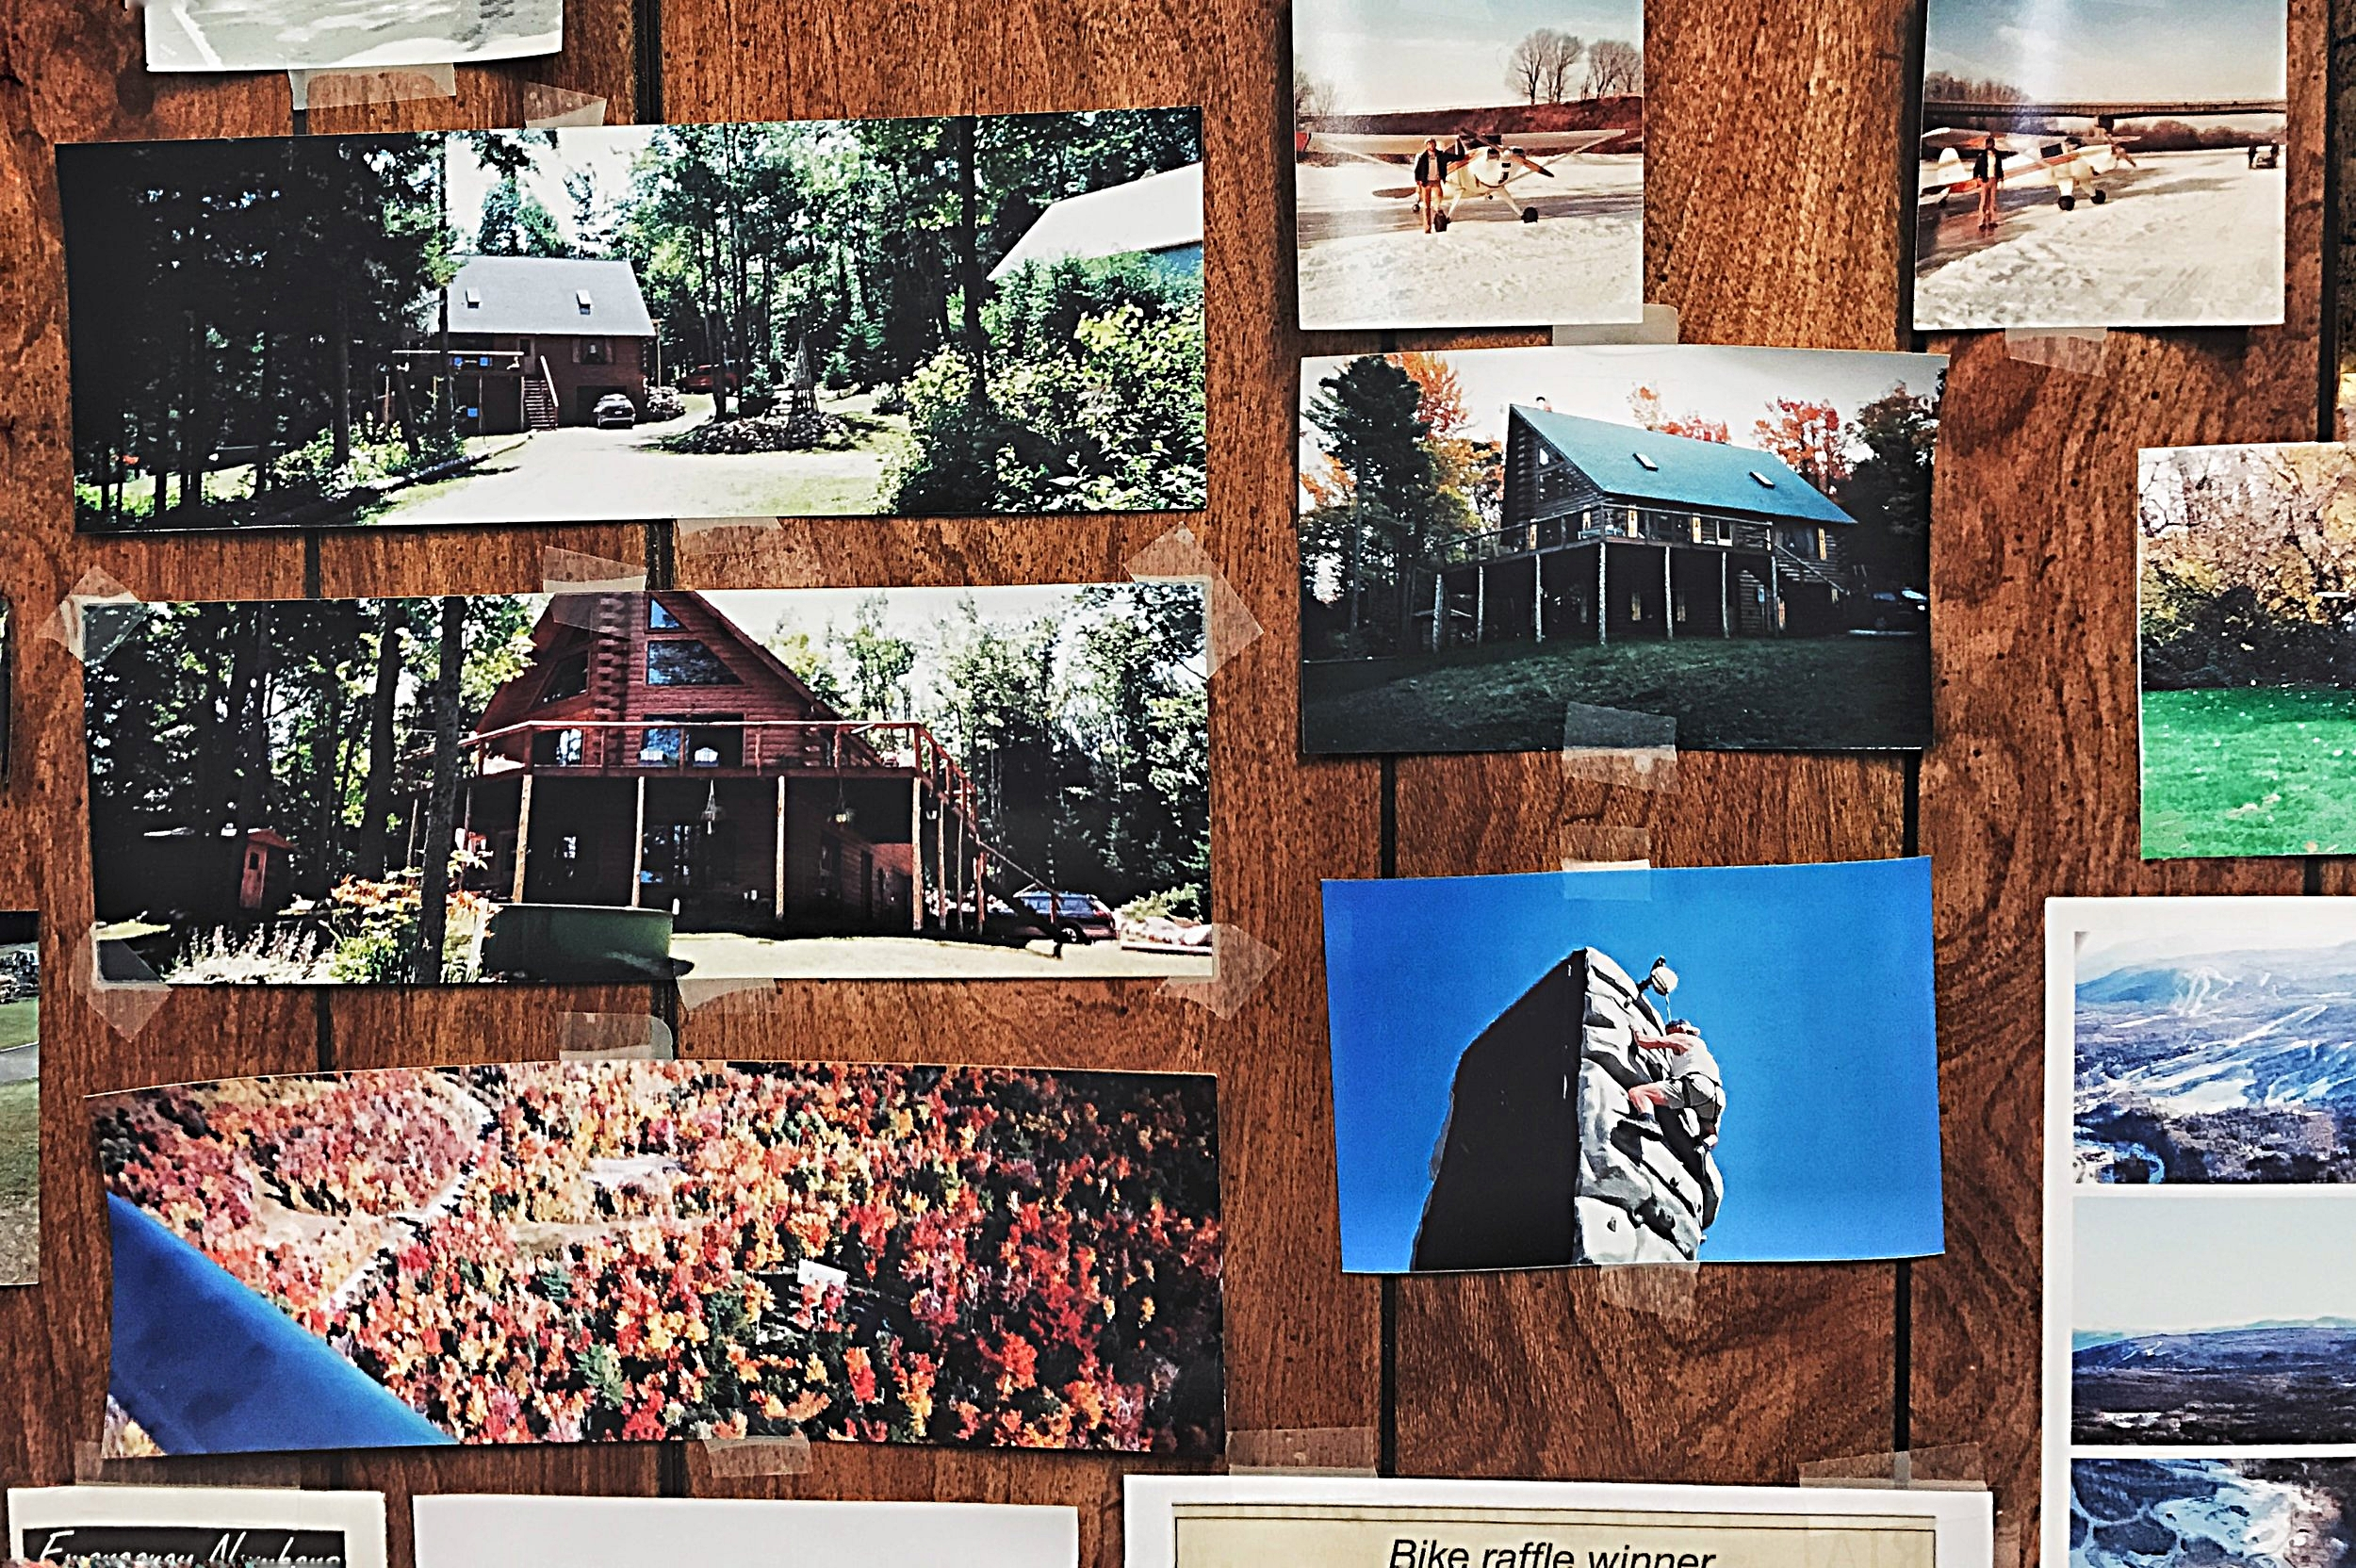 Pictures of hardware salesman Franz Fredericks's home on Titus Mountain. Fredericks's house was surrounded by state troopers during the manhunt for Richard Matt and David Sweat.  (Chelsia Rose Marcius/March 9, 2017)